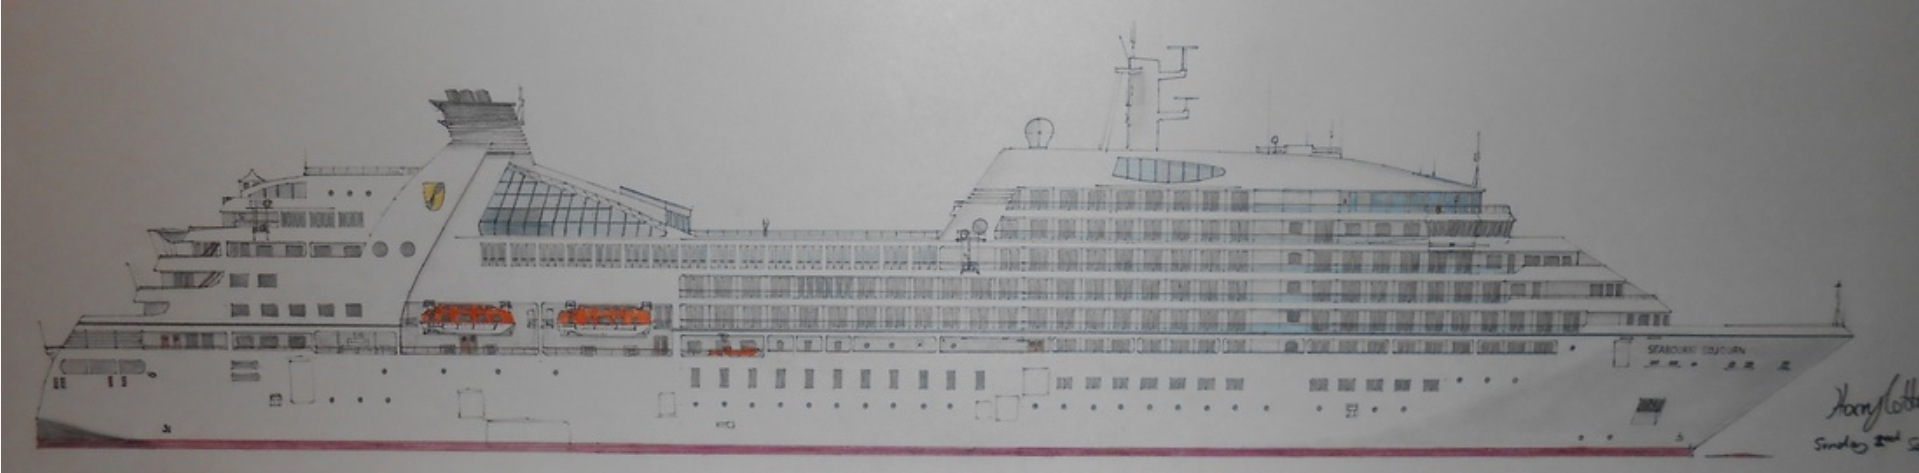 The Teenager Whos Drawn Incredibly Detailed Cruise Ships - Draw a cruise ship